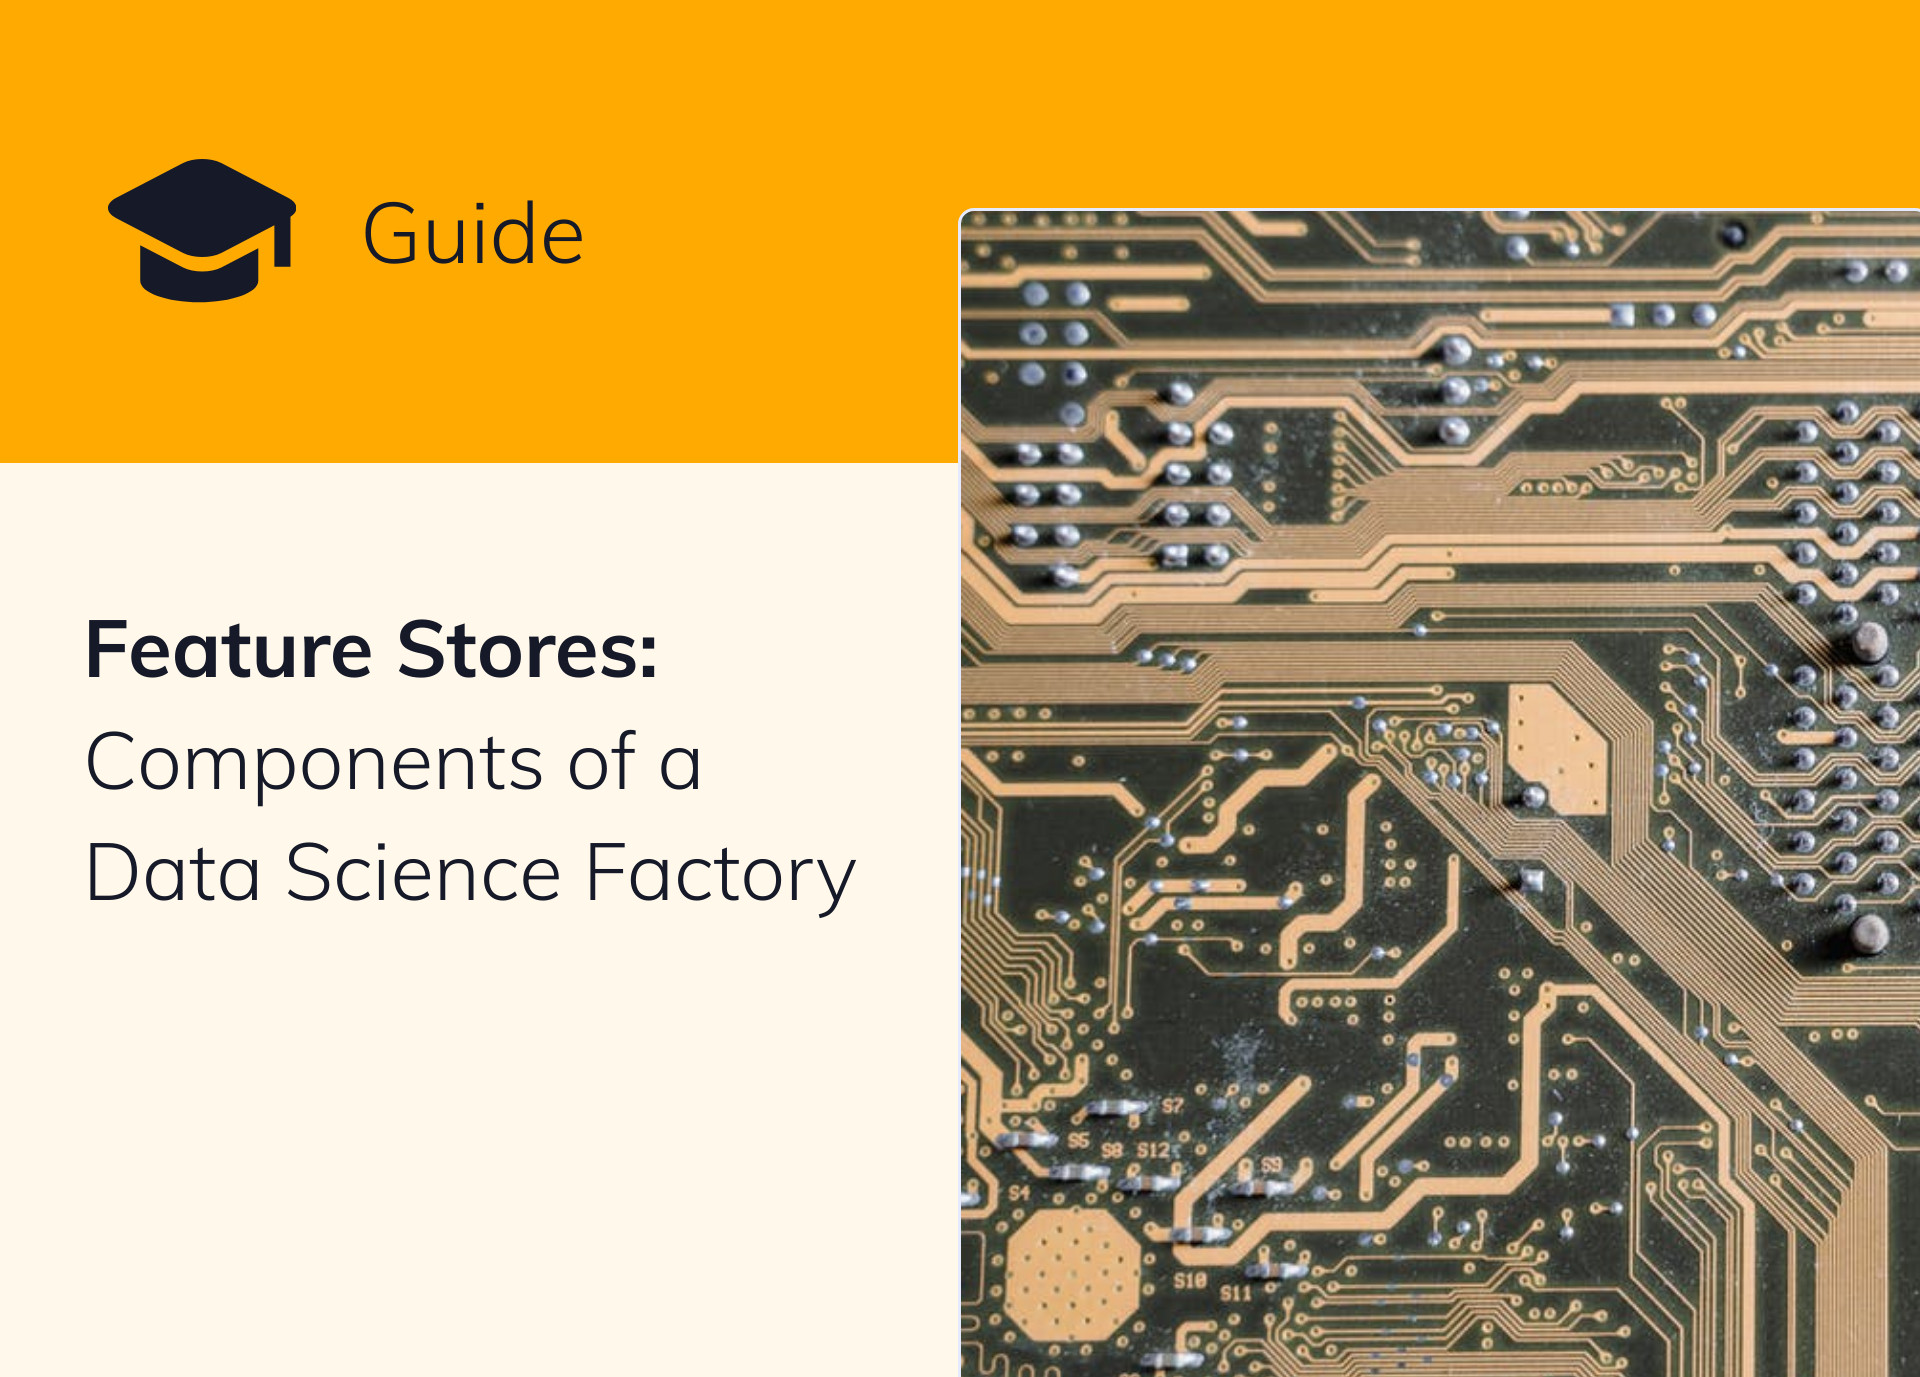 Feature Stores: Components of a Data Science Factory [Guide]